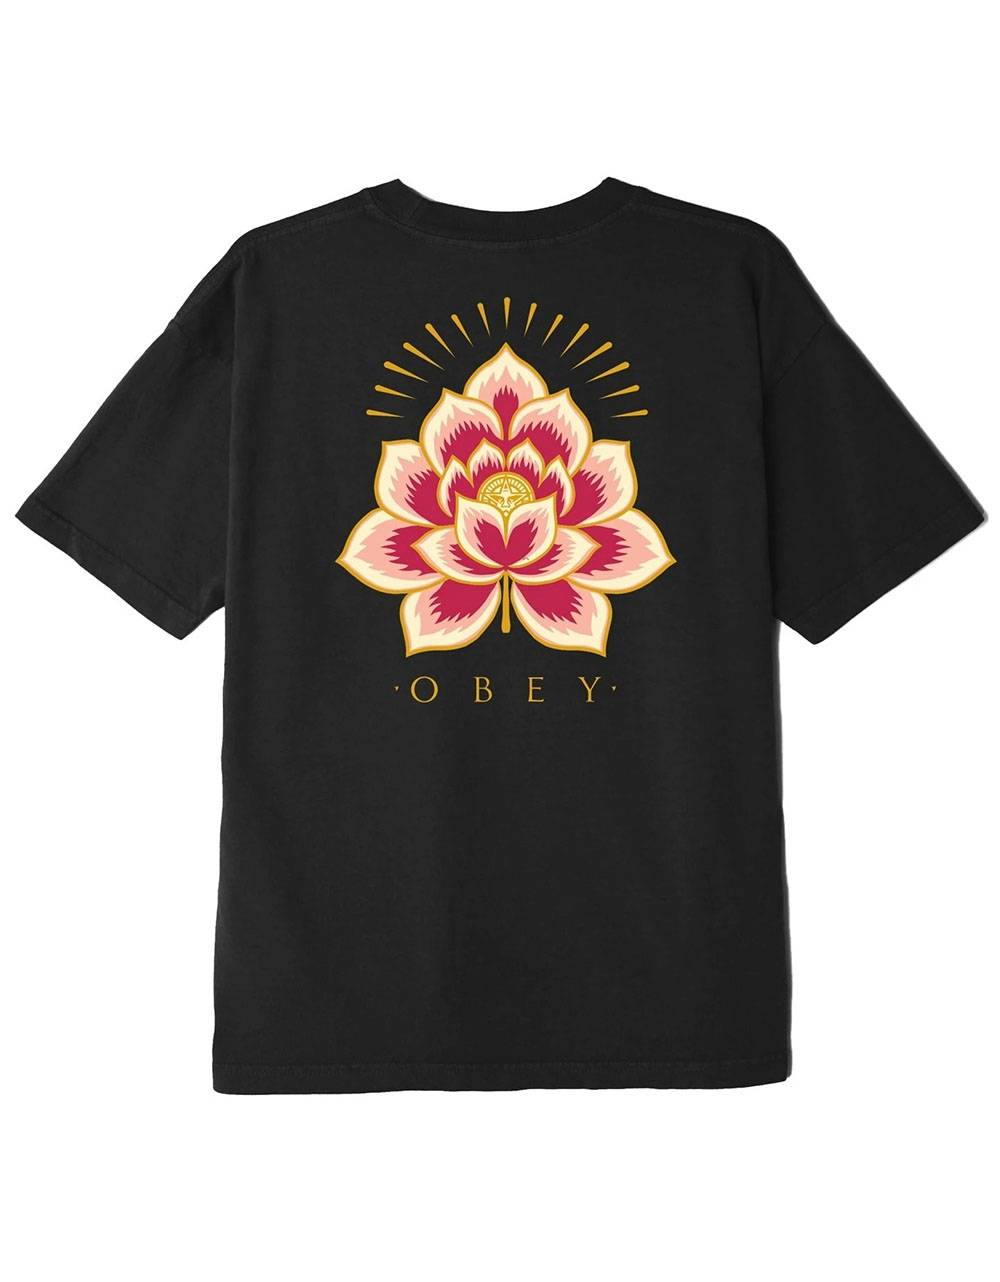 Obey Woman Radiant lotus classic tee - black obey T-shirt 36,89€